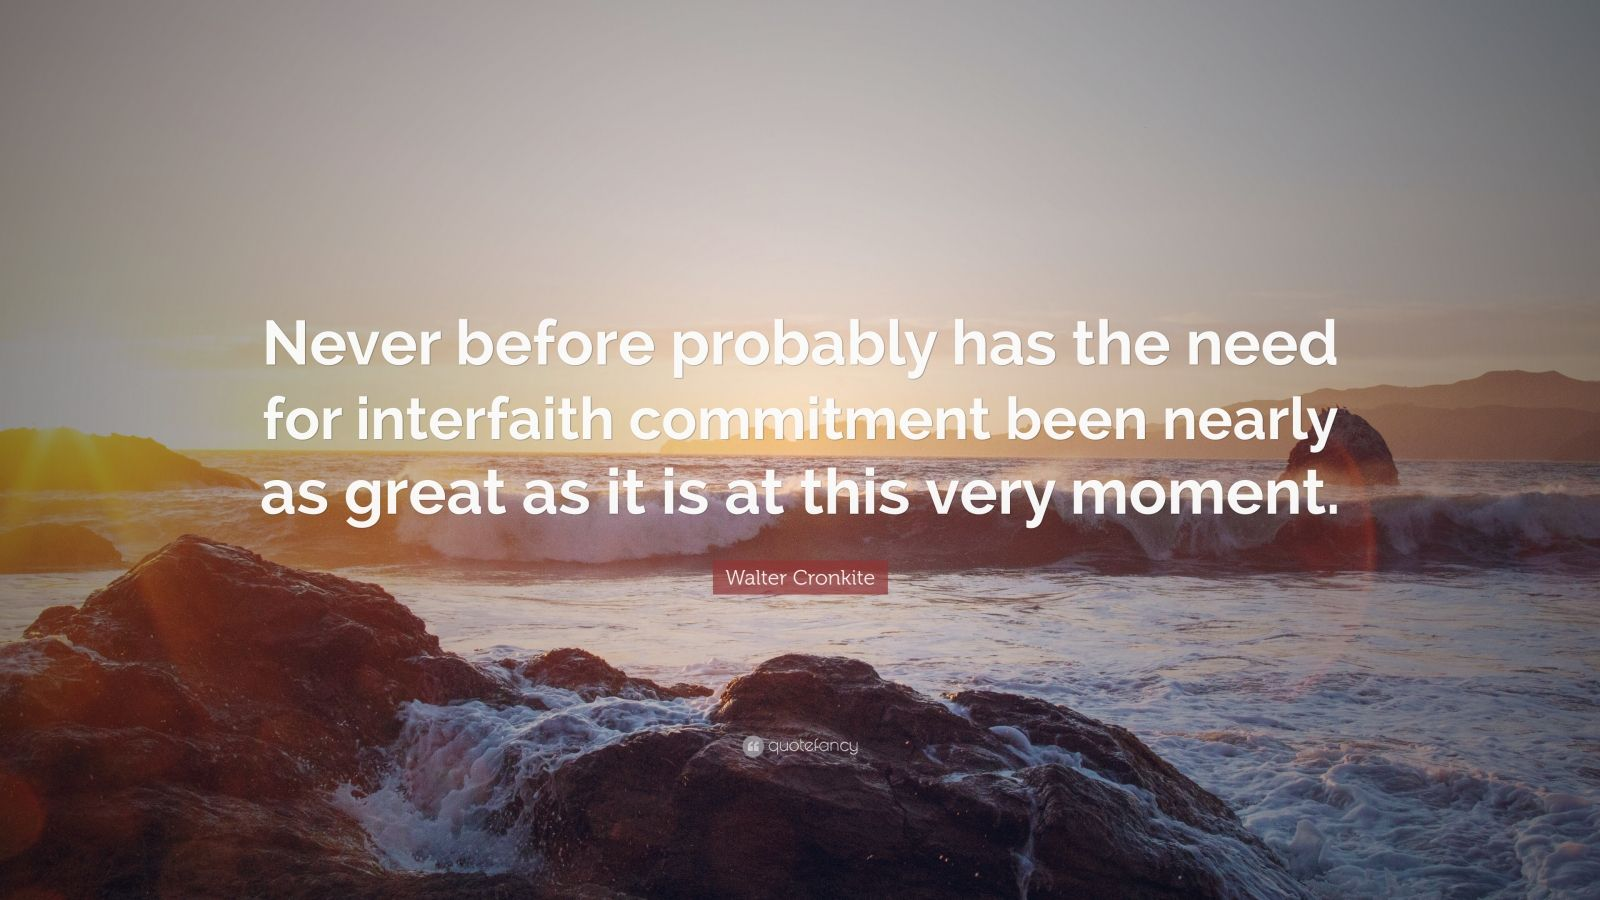 """Walter Cronkite Quote: """"Never before probably has the need for interfaith commitment been nearly as great as it is at this very moment."""""""